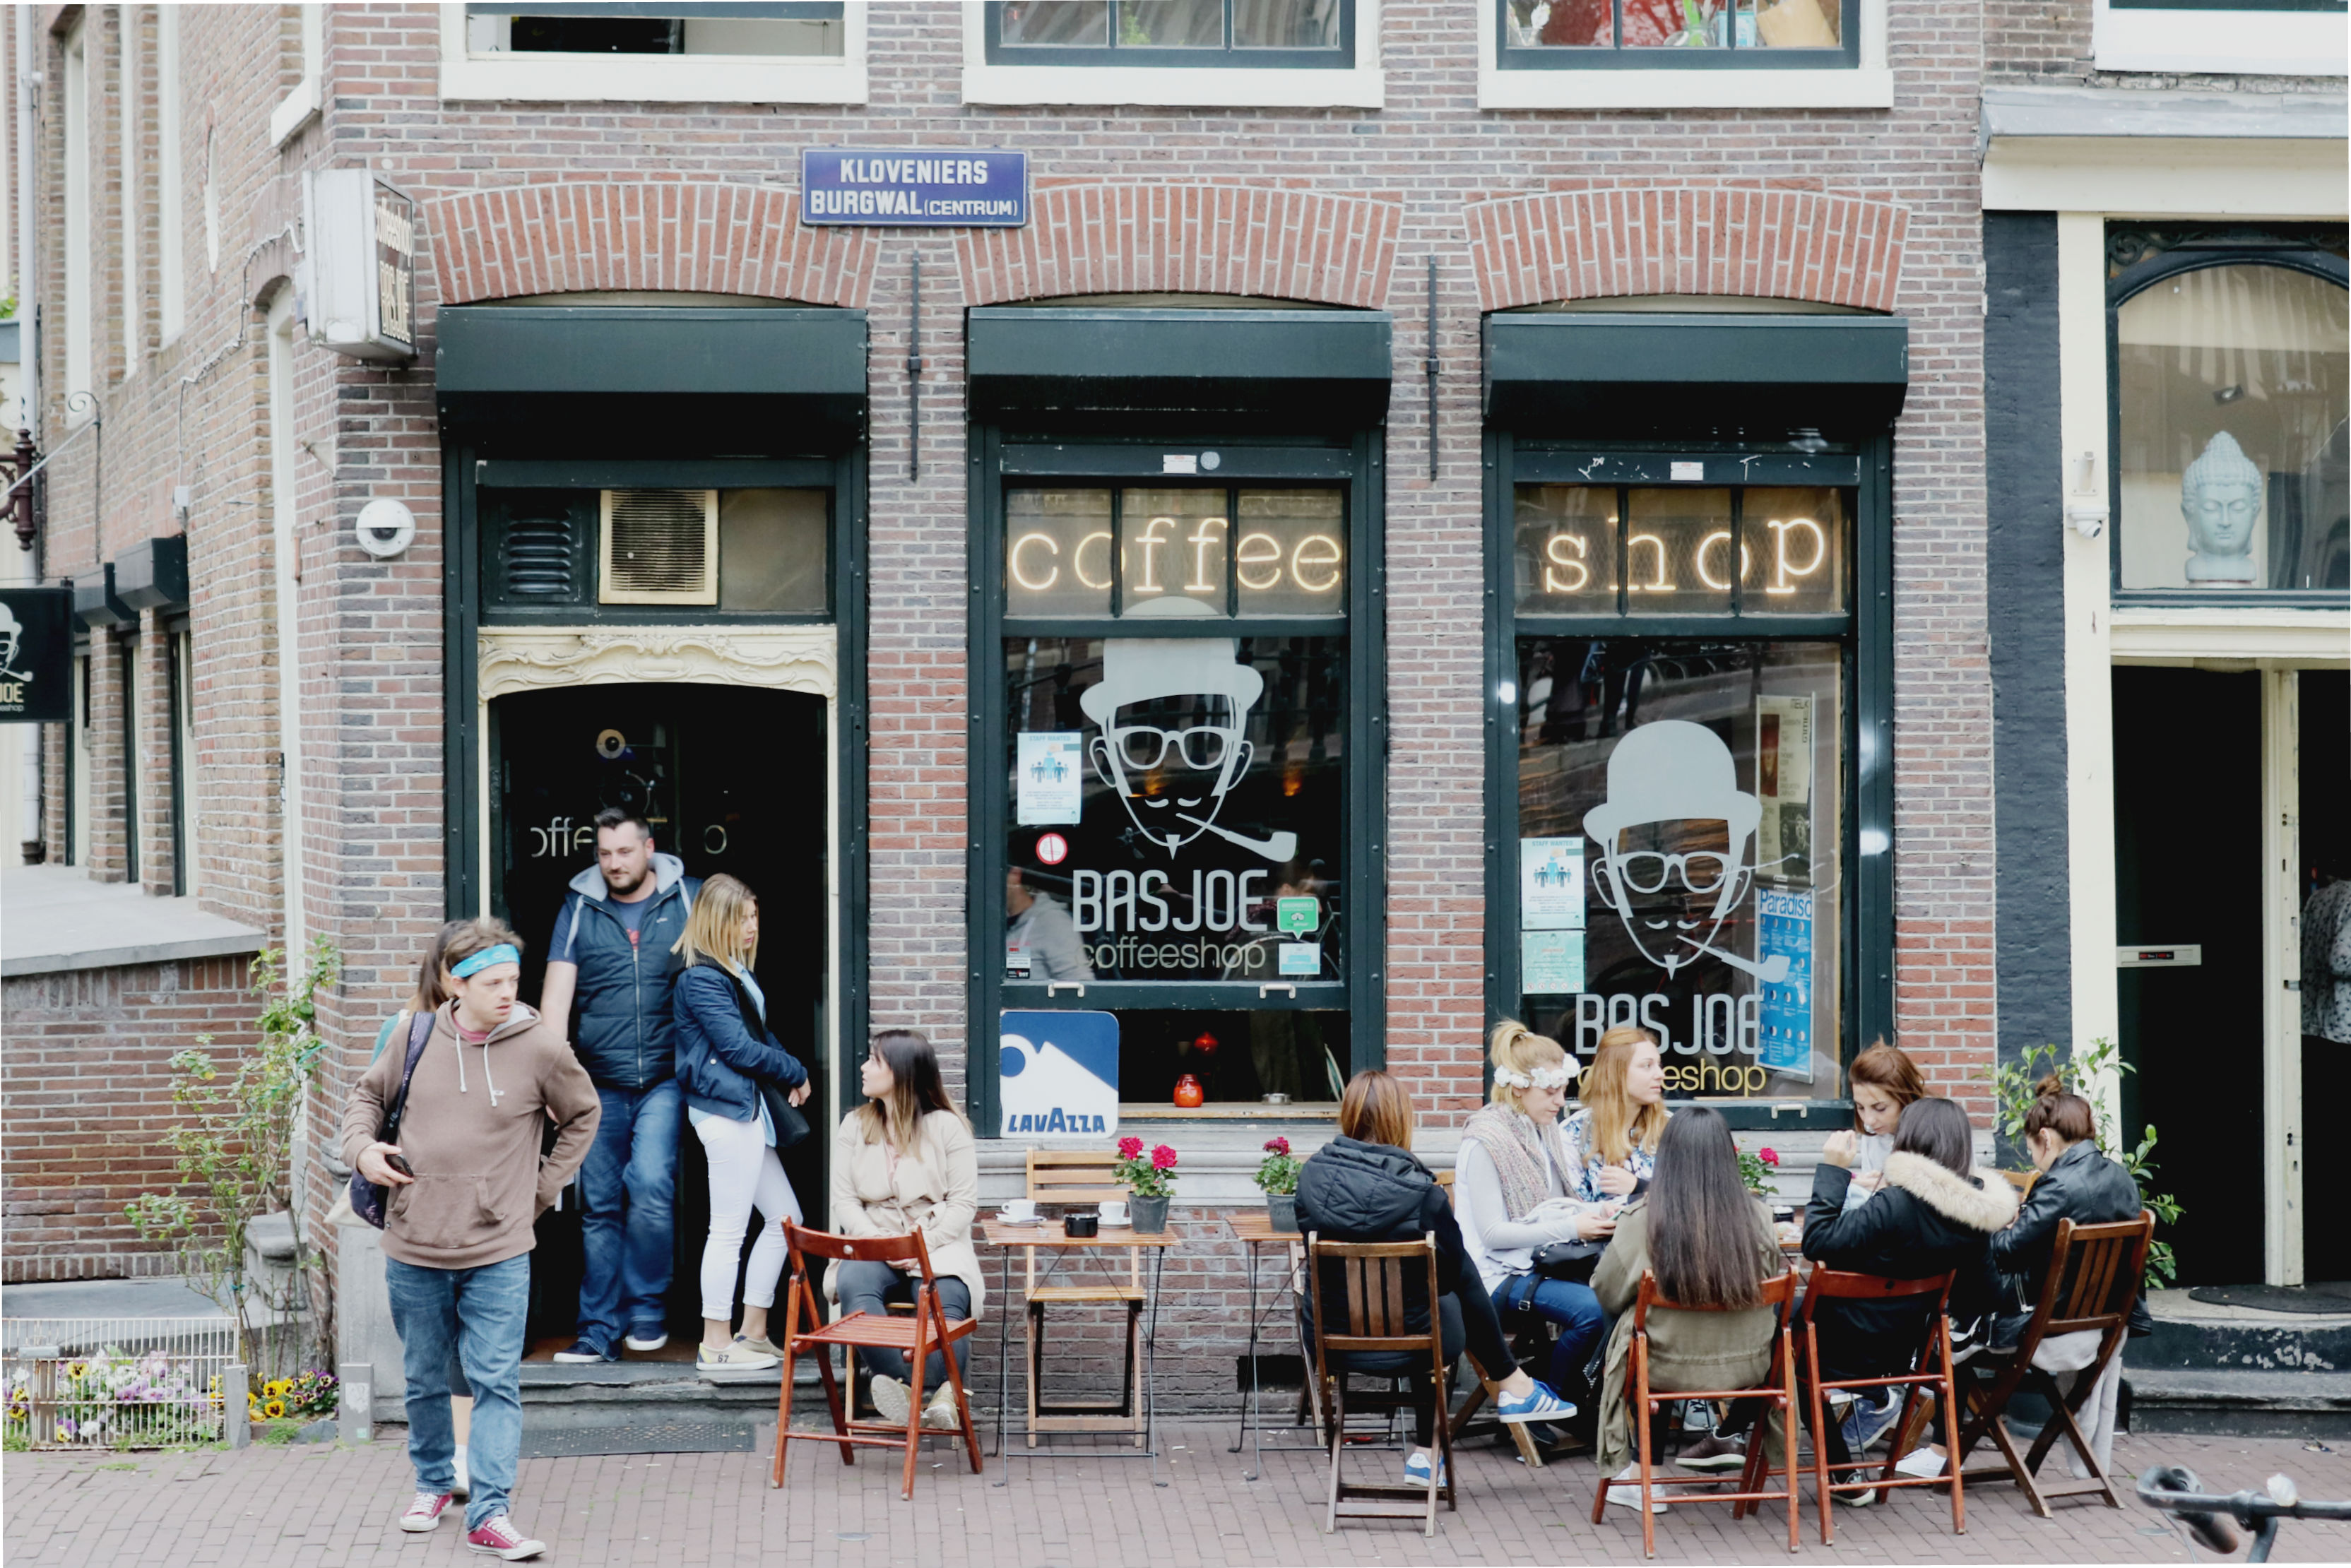 People sitting outside a coffee shop in Amsterdam